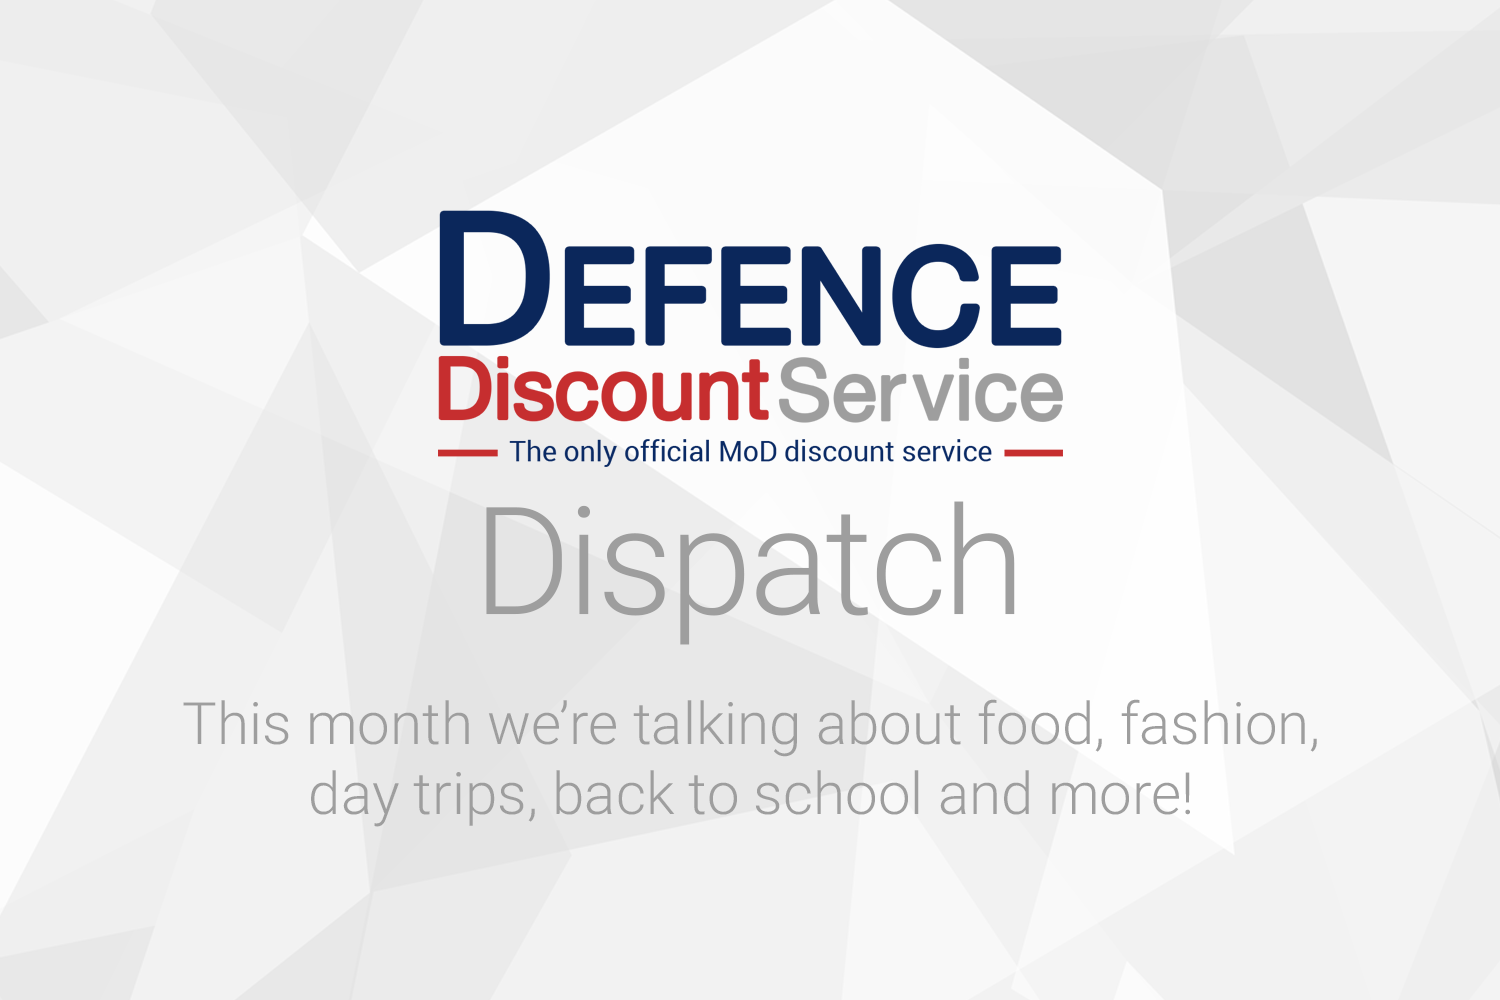 Dispatch - Summer savings that support the economy